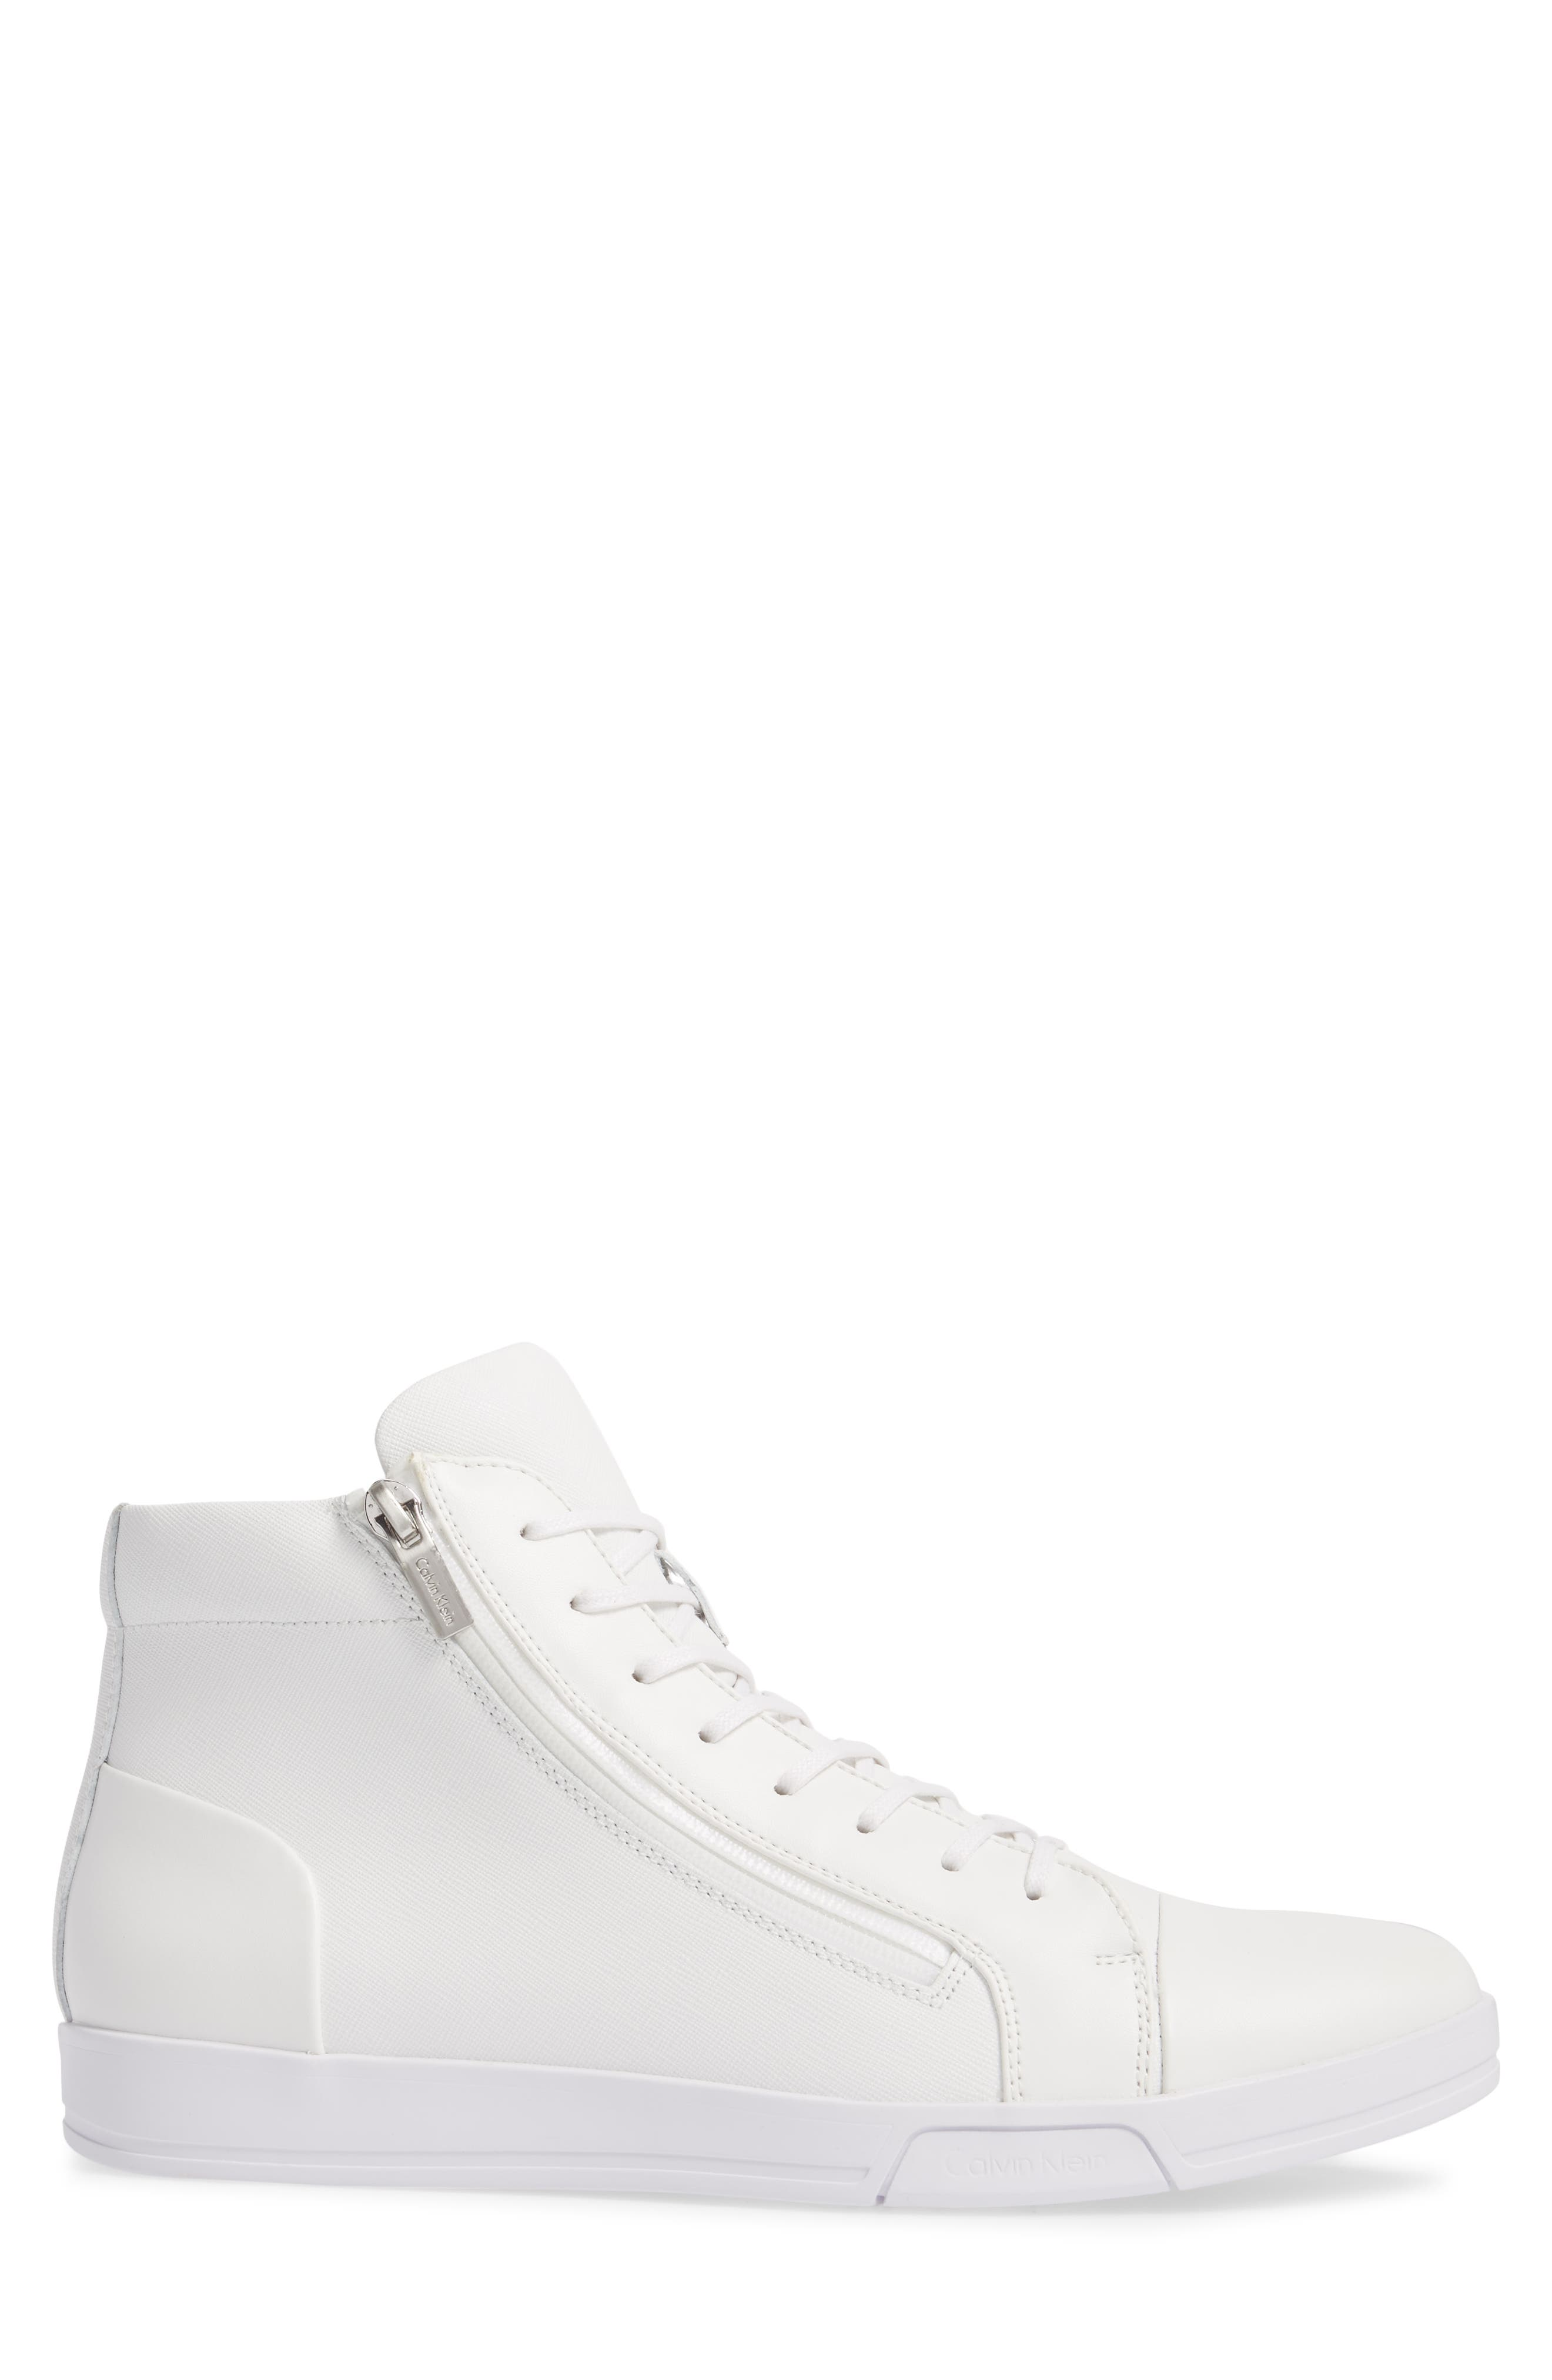 Berke High Top Sneaker,                             Alternate thumbnail 3, color,                             White Leather